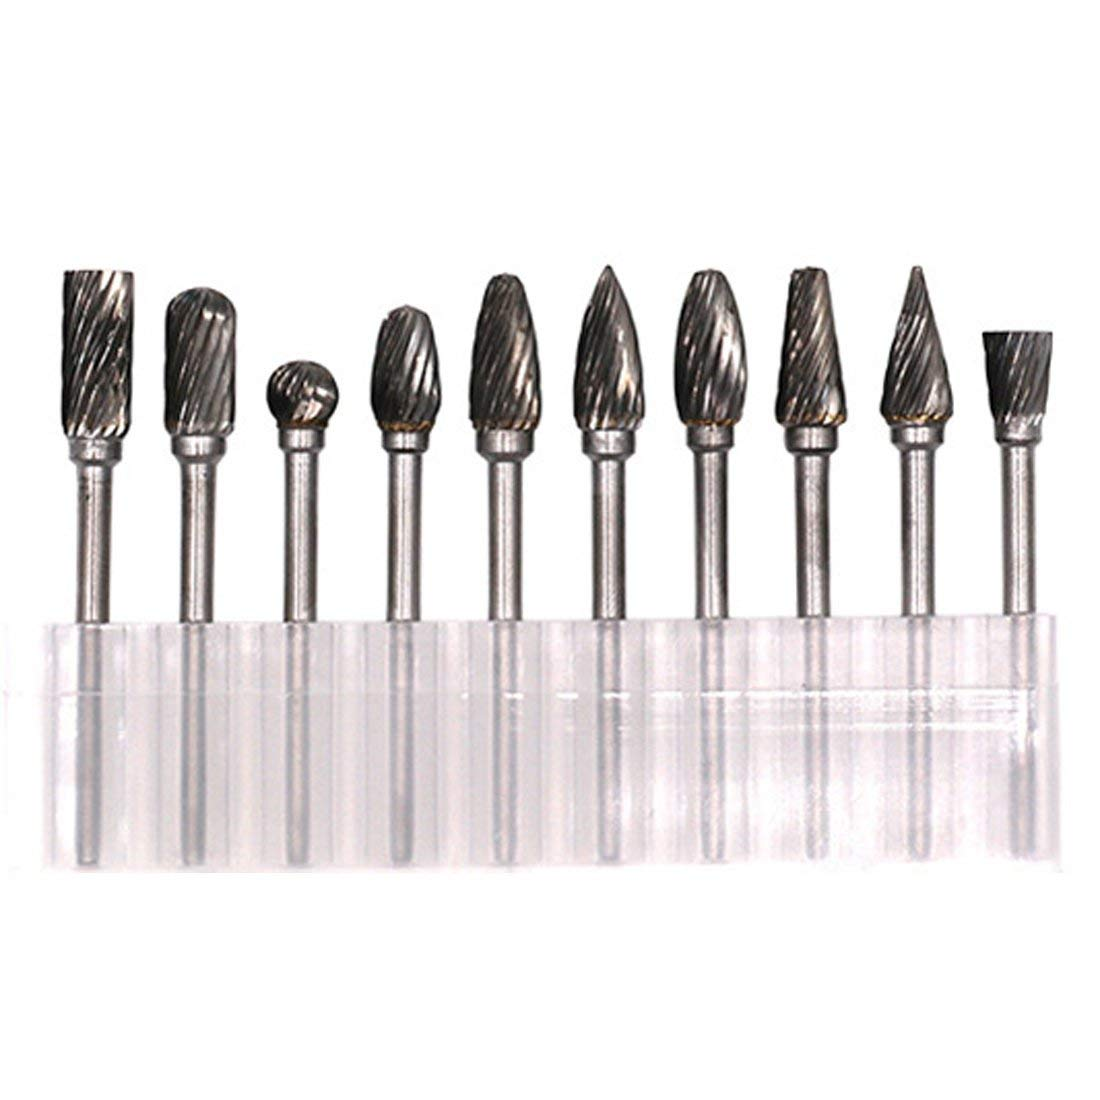 Power & Hand Tools Silver 10 Model Tungsten Steel Solid Carbide